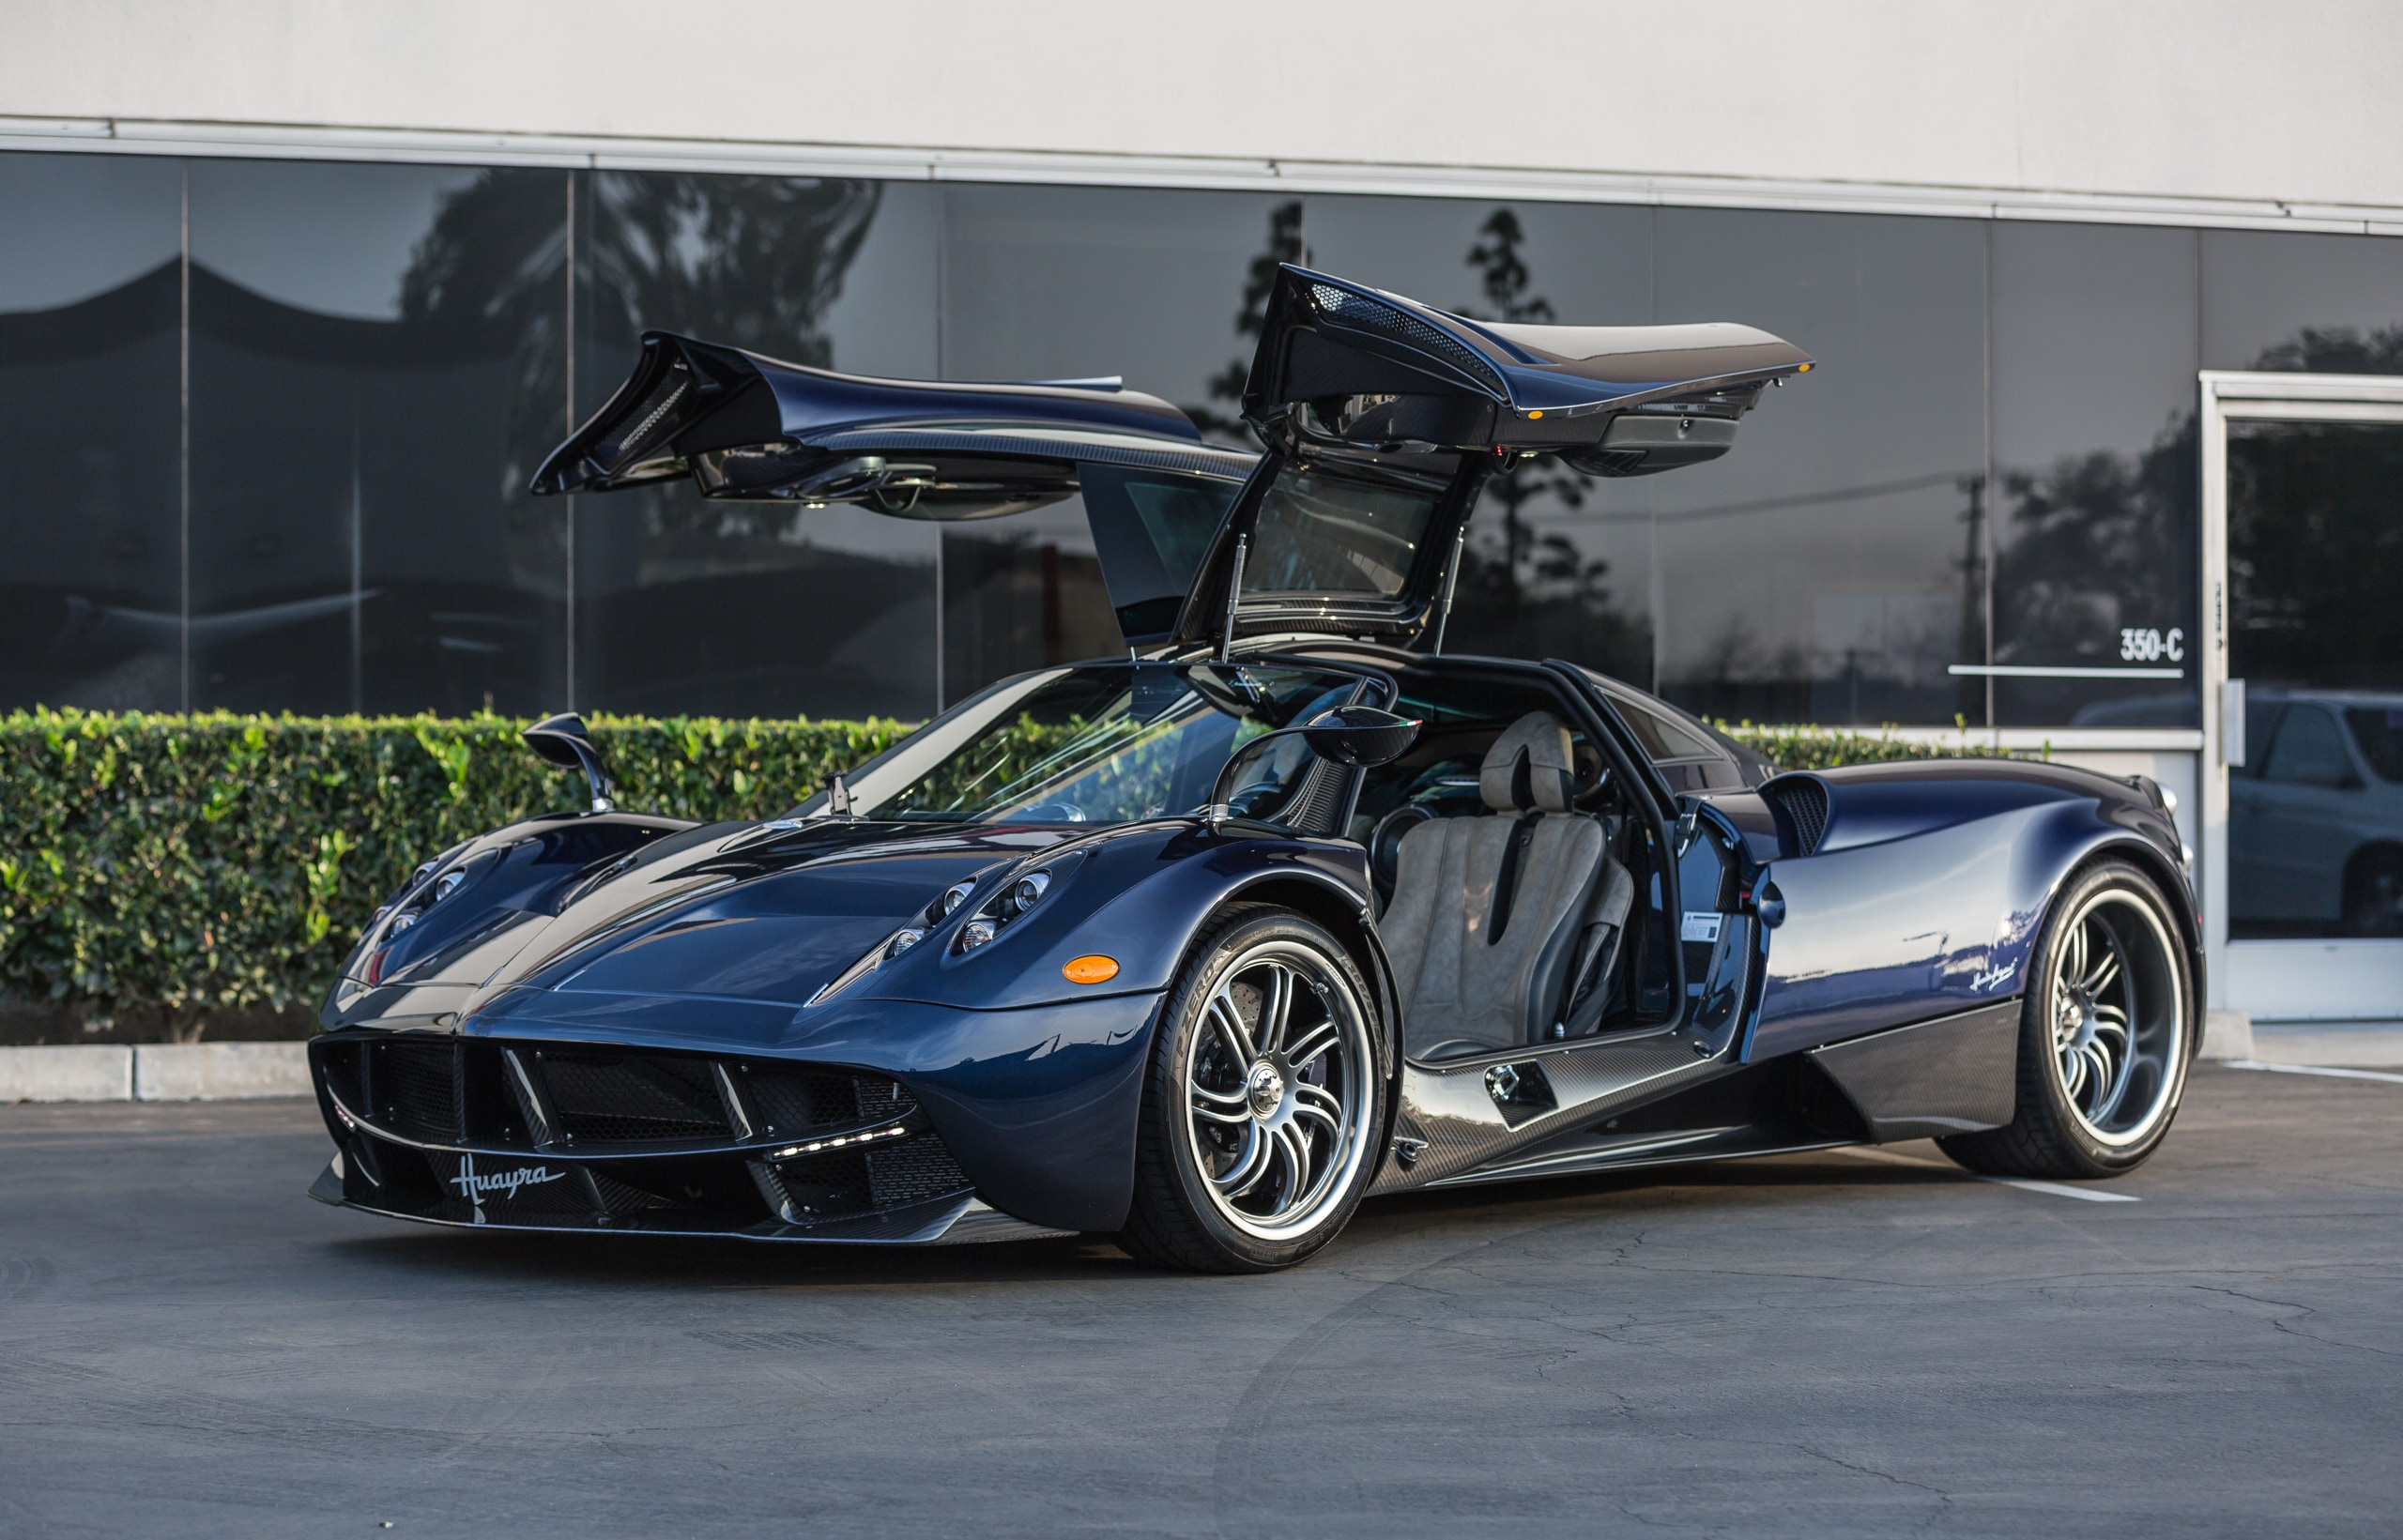 The dream of a car like the Huayra Roadster can only be told through the words of Horacio Pagani the man who more than anyone else has imagined desired and shaped